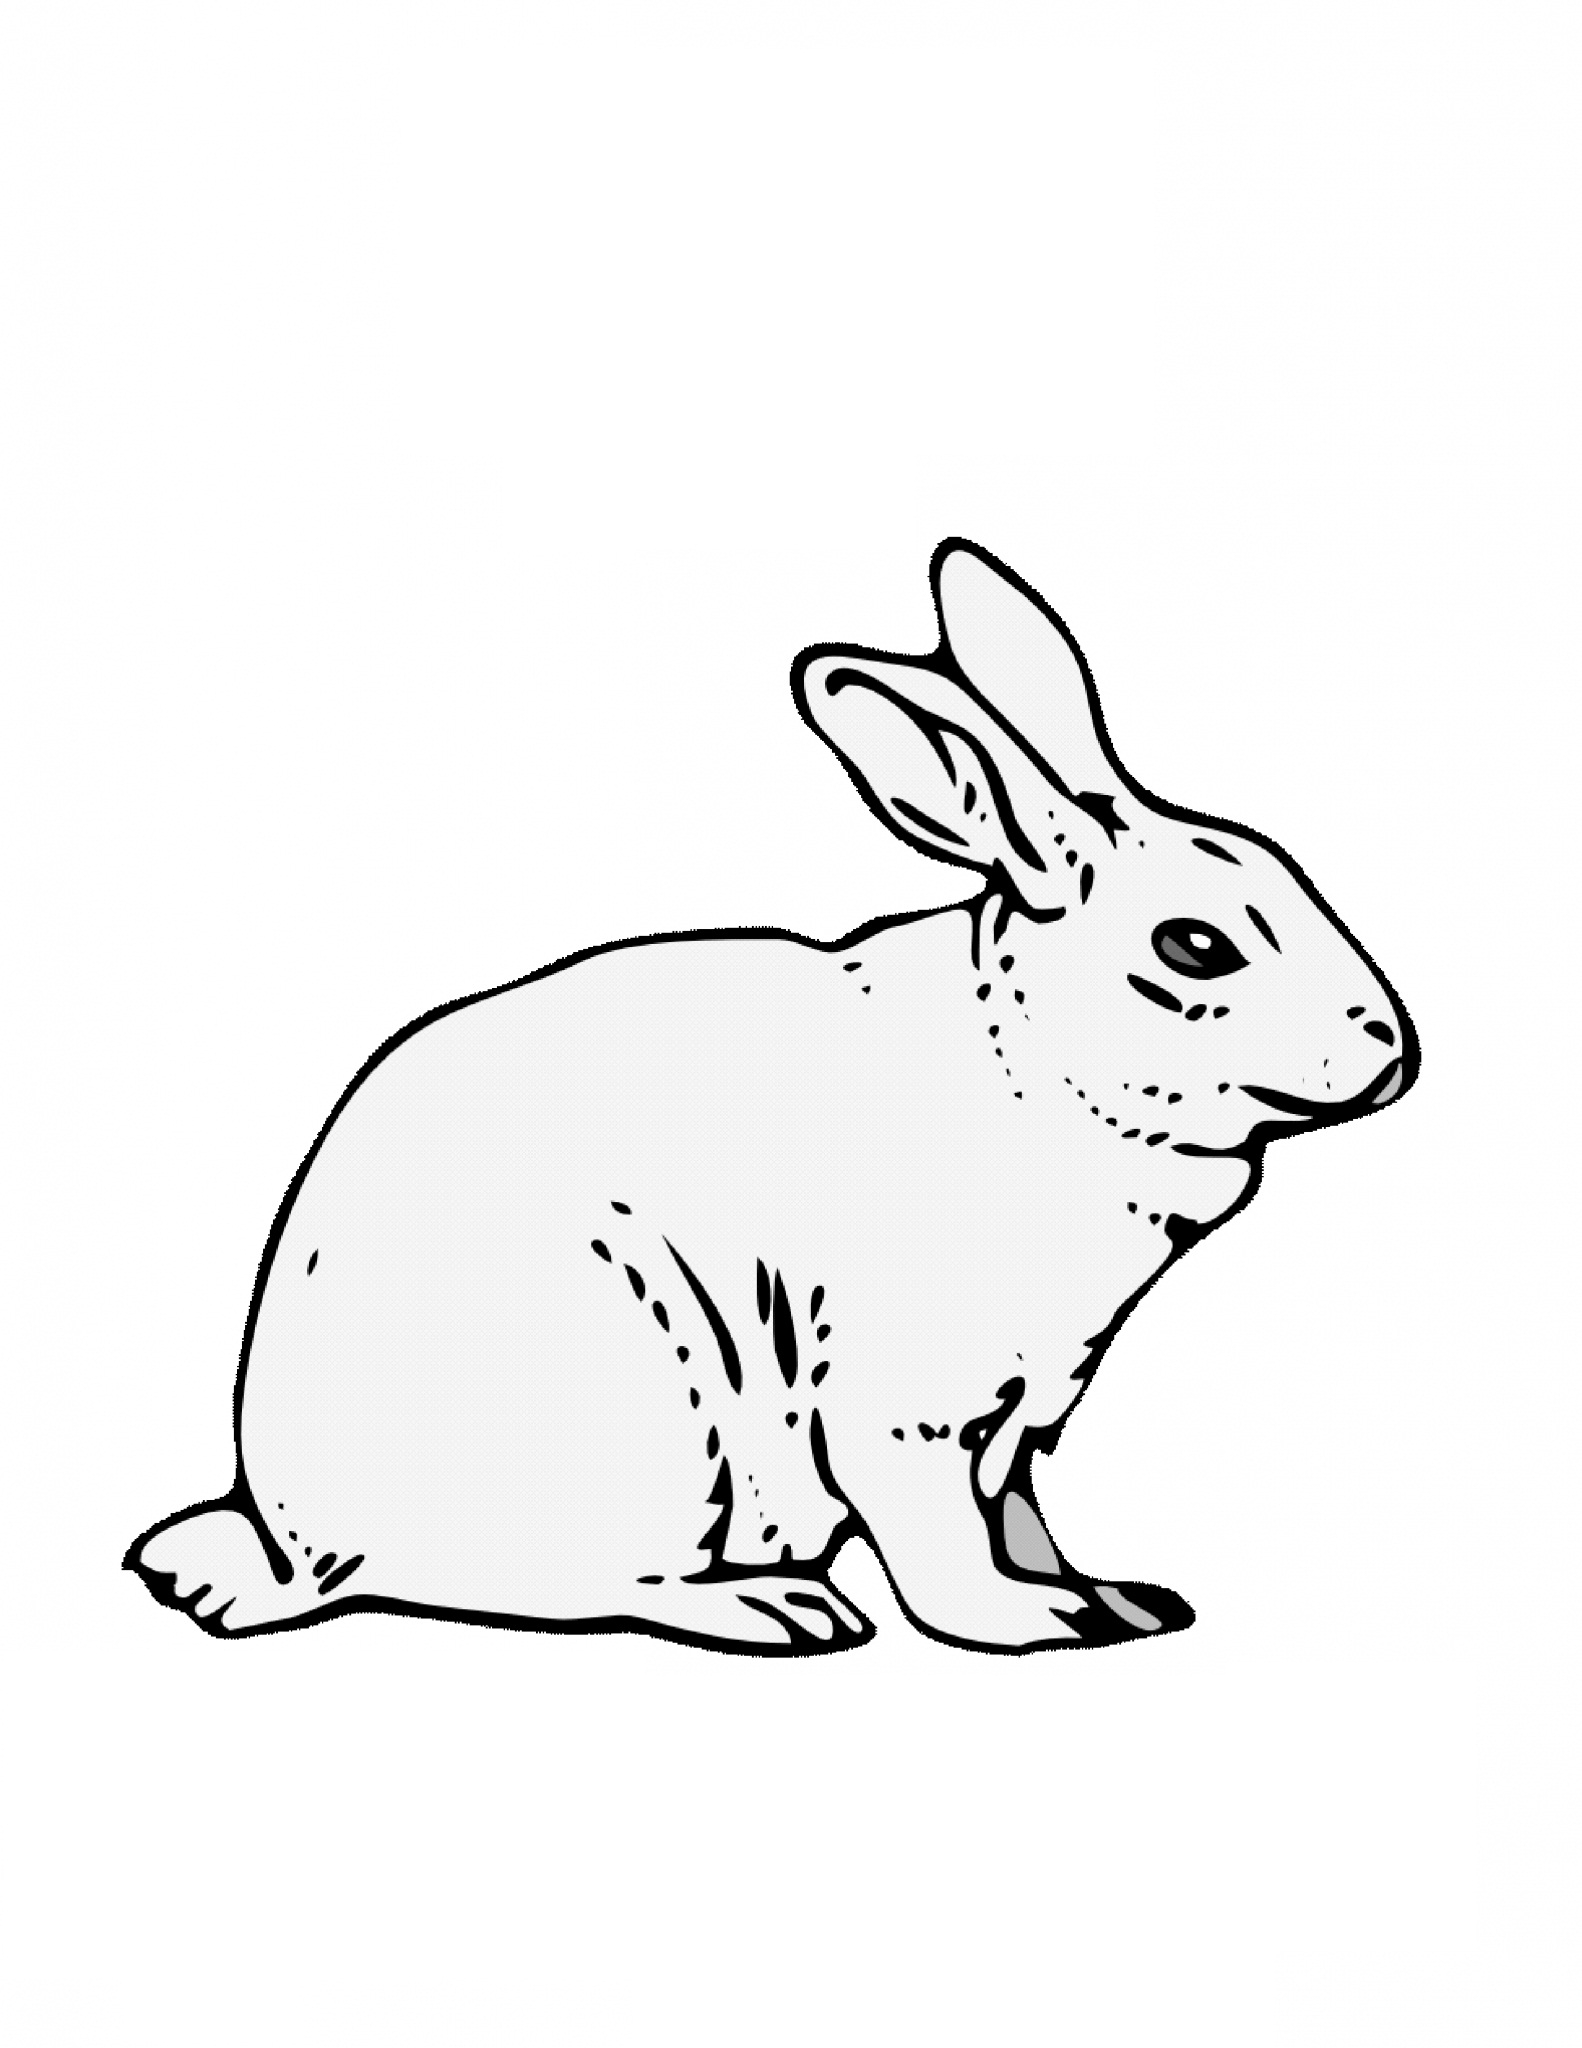 bunny coloring book coloring pages of a rabbit printable free coloring sheets book bunny coloring